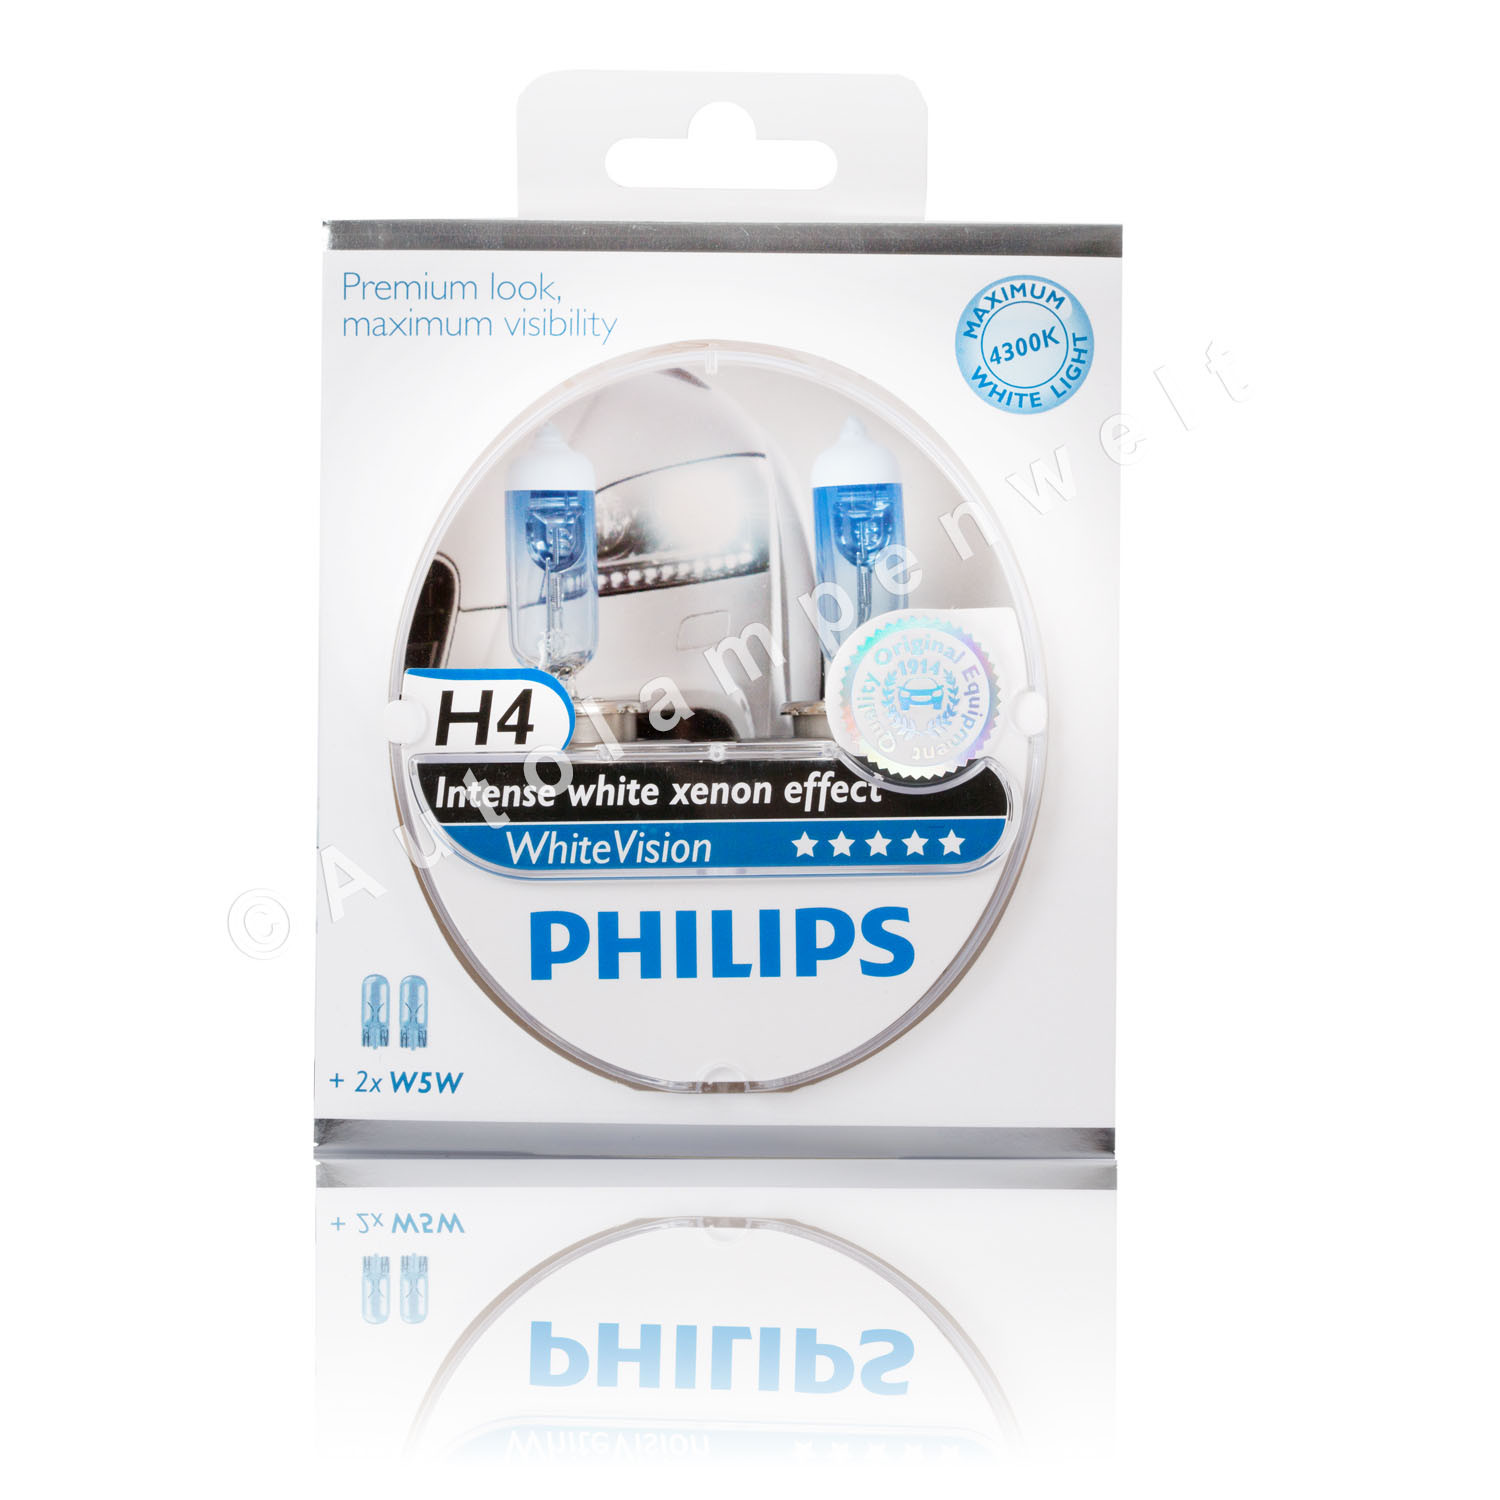 philips white vision h4 halogen scheinwerferlampe duopack. Black Bedroom Furniture Sets. Home Design Ideas